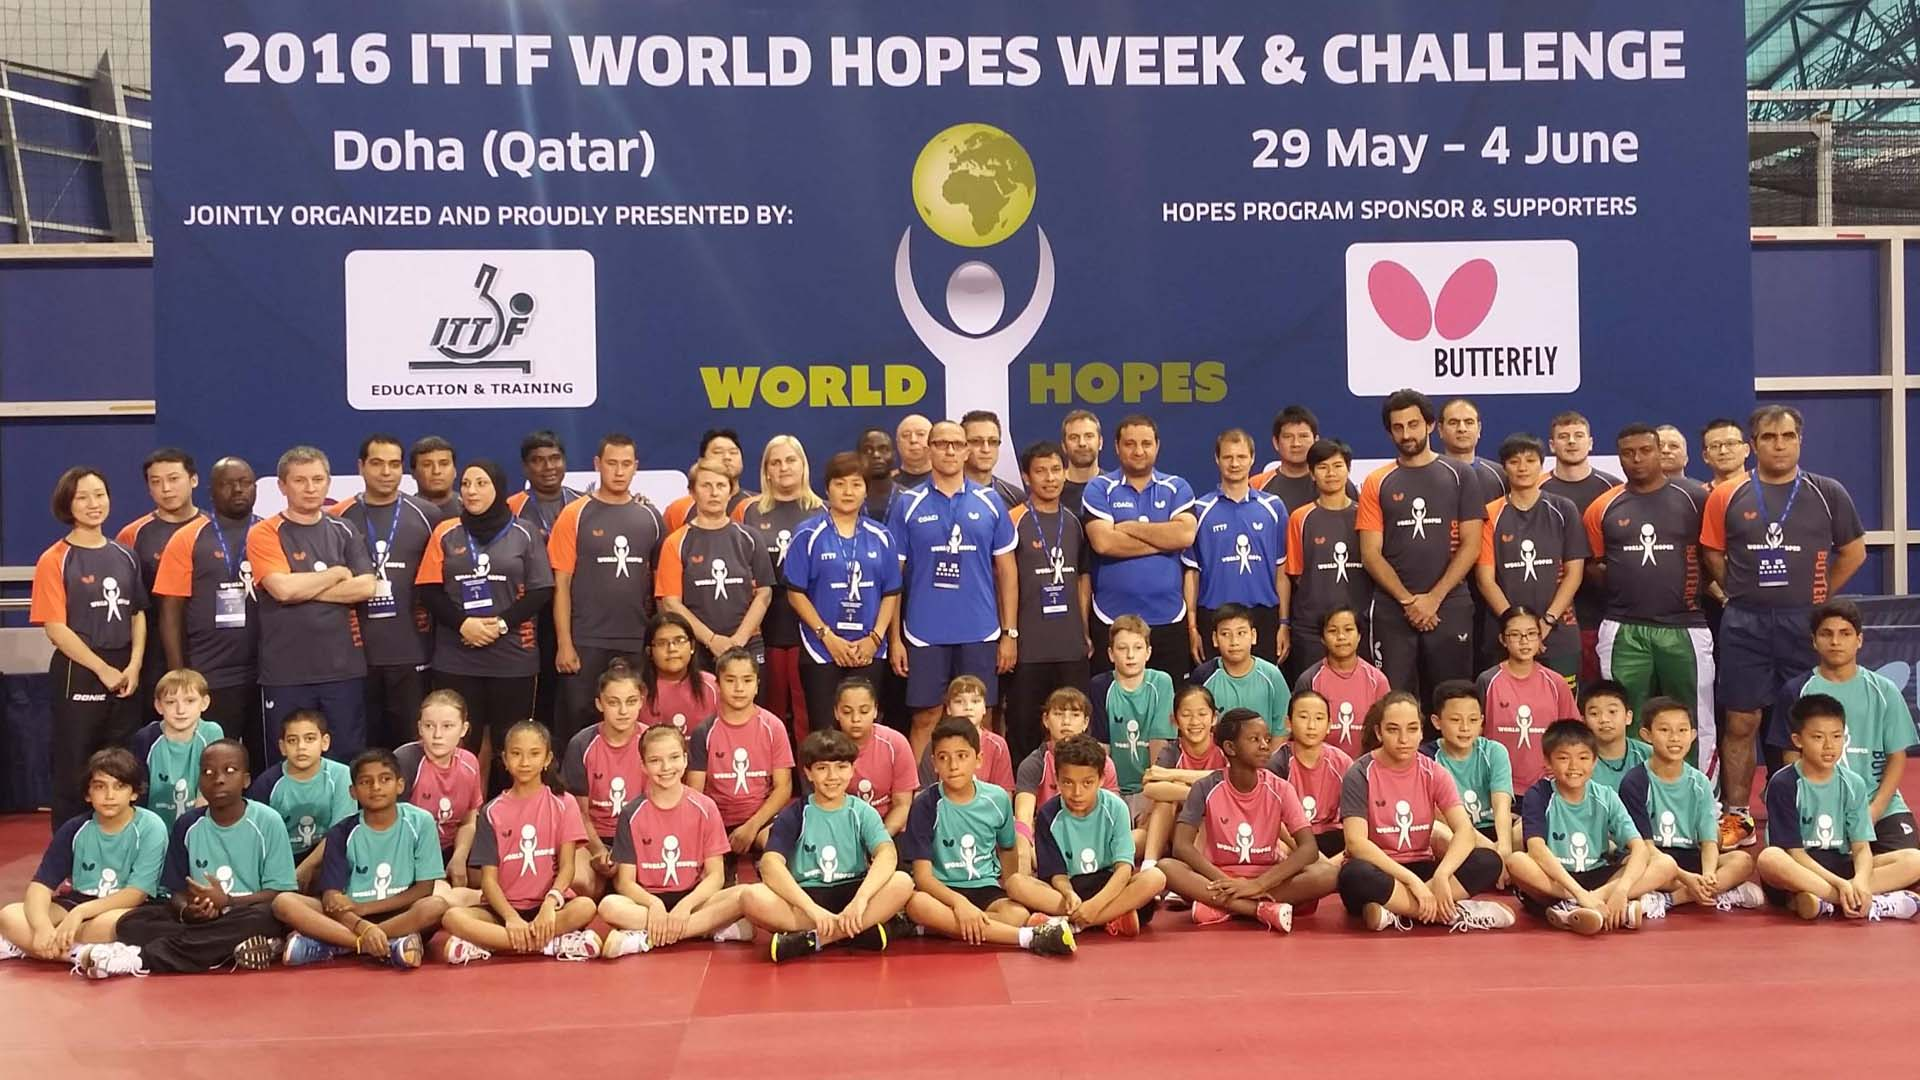 New Talents emerge with the ITTF Hopes Program